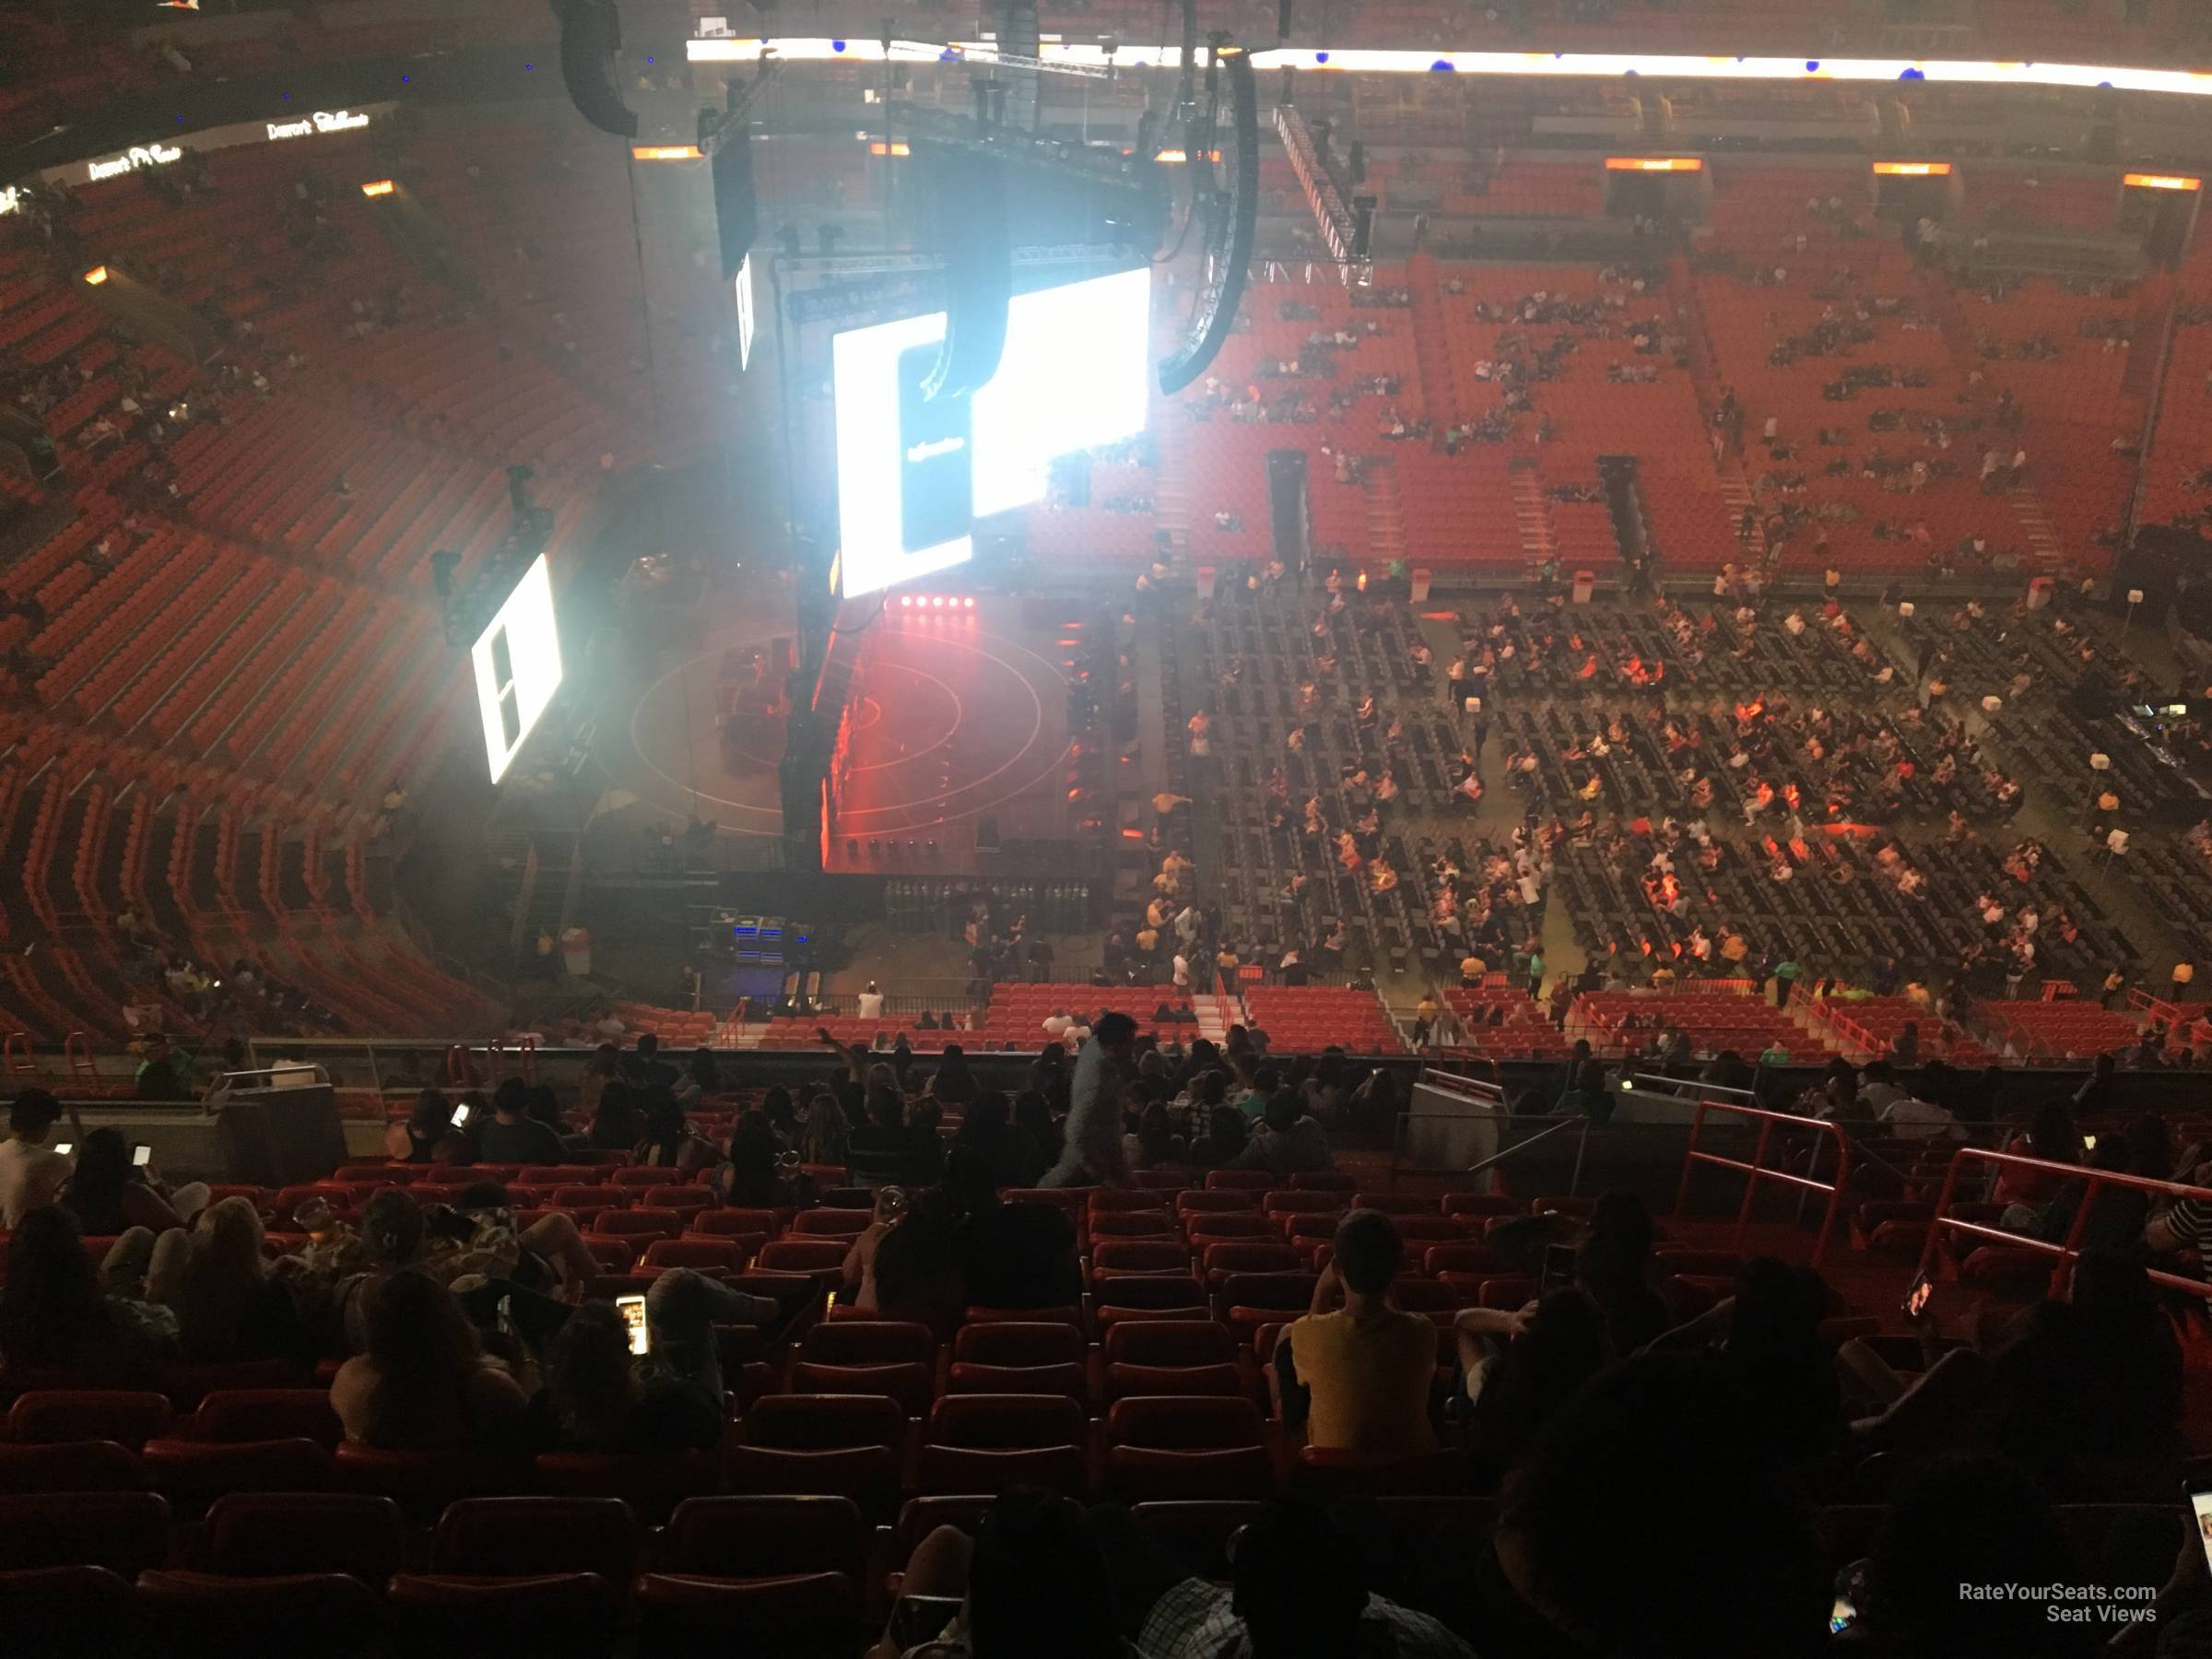 Concert Seat View for AmericanAirlines Arena Section 326, Row 18